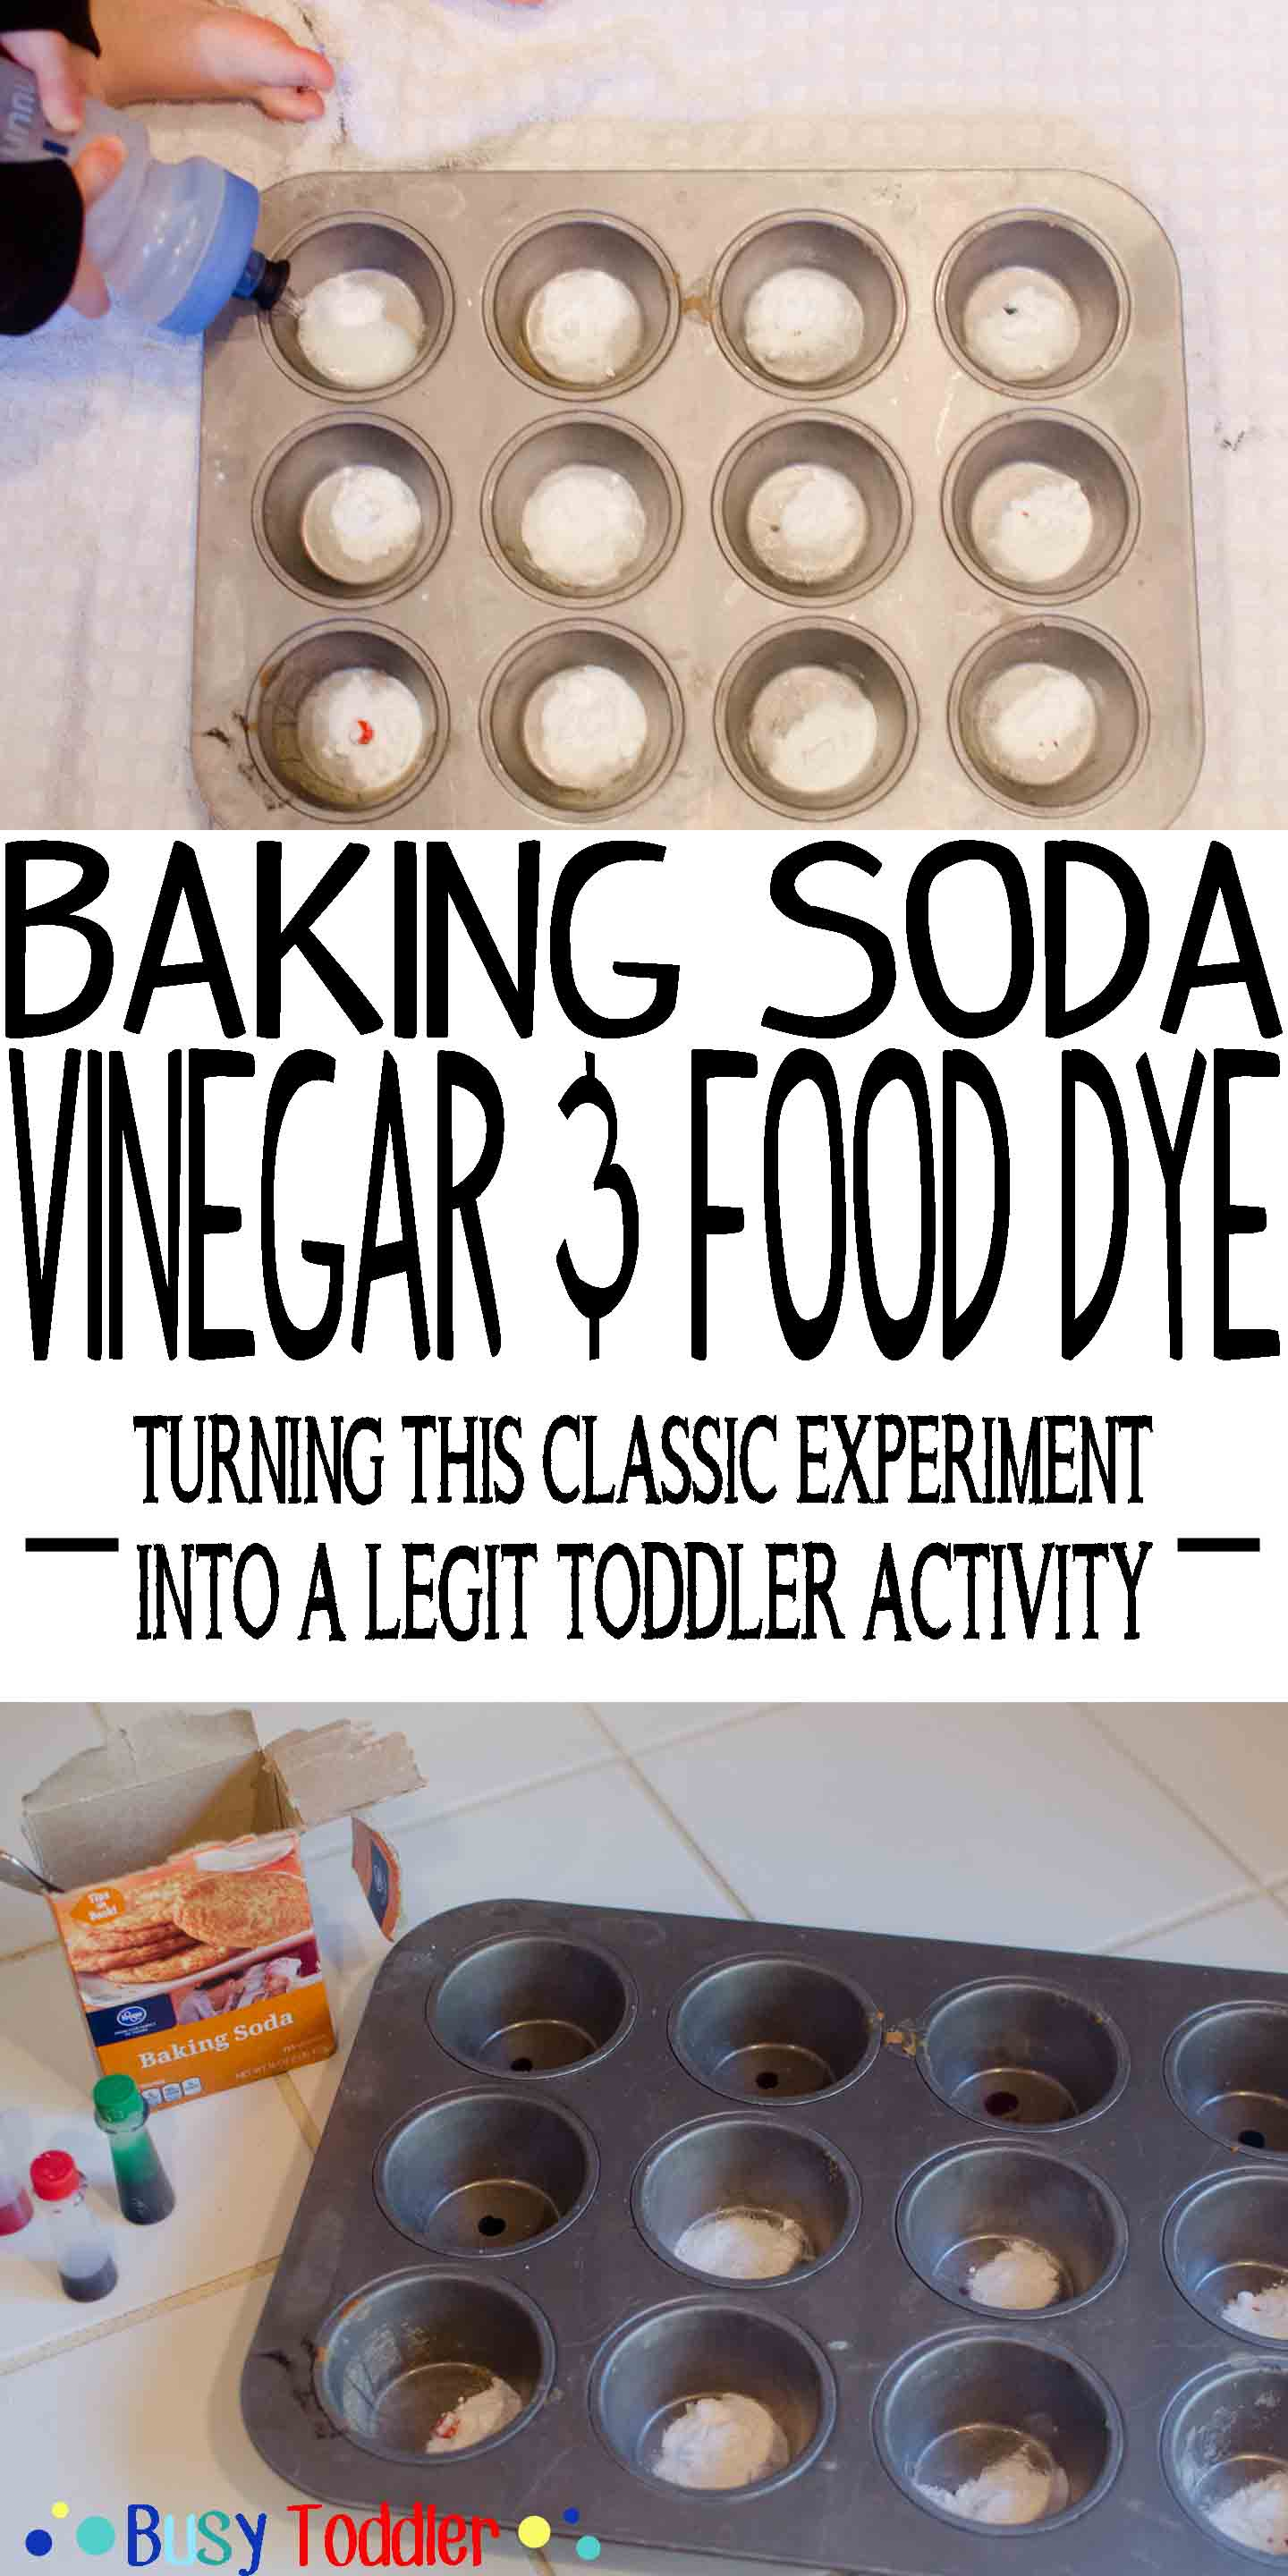 Fizzy Fun: turning this classic experiment into a toddler activity